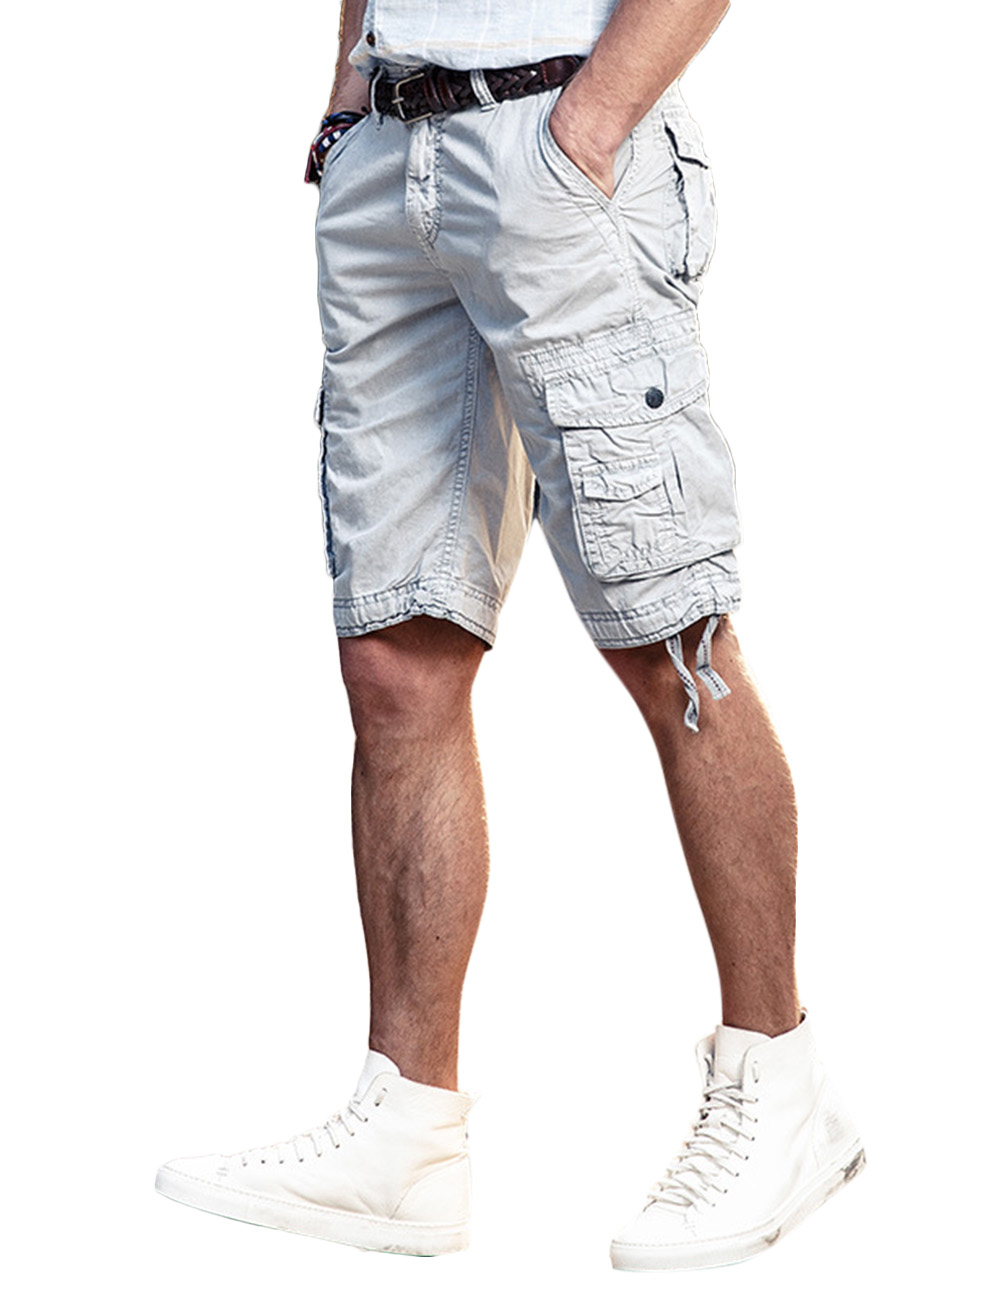 Men's Europe and America Casual Short Overalls Pure Cotton Straight Half Pant